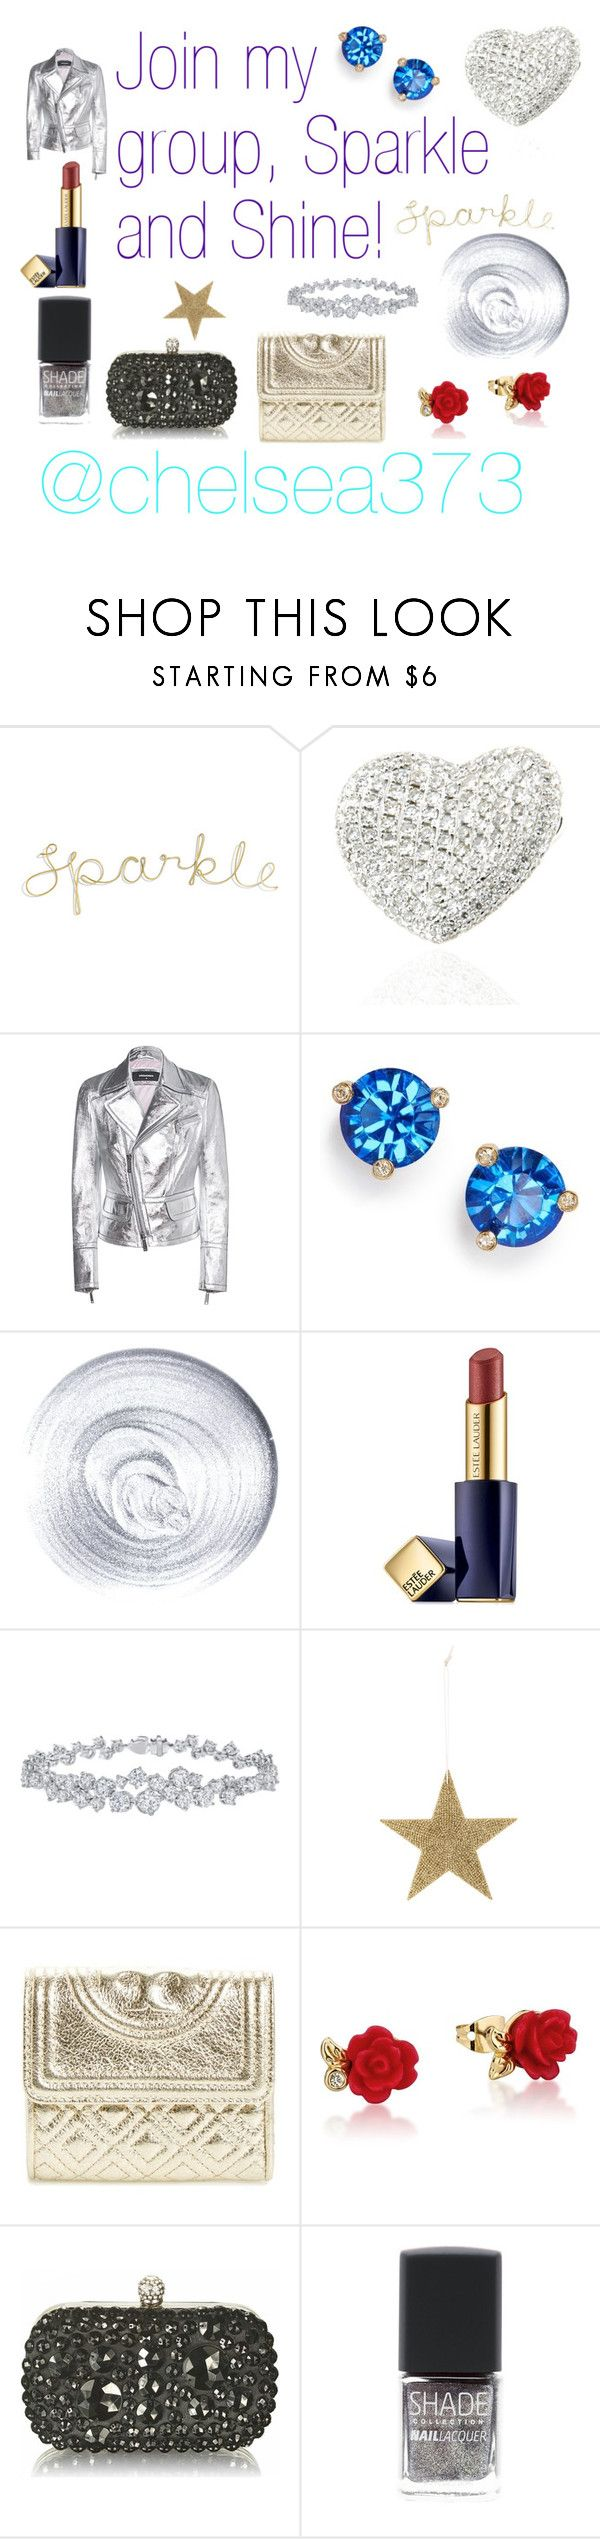 """""""I would like to invite you to join my group: Sparkle and Shine. To join the group, click """"Accept group invitation"""" here: http://www.polyvore.com/cgi/group.show?id=210760."""" by chelsea373 on Polyvore featuring Dsquared2, Kate Spade, Guerlain, Estée Lauder, Harry Winston, Bloomingville, Tory Burch, Disney and SHADE Collection"""